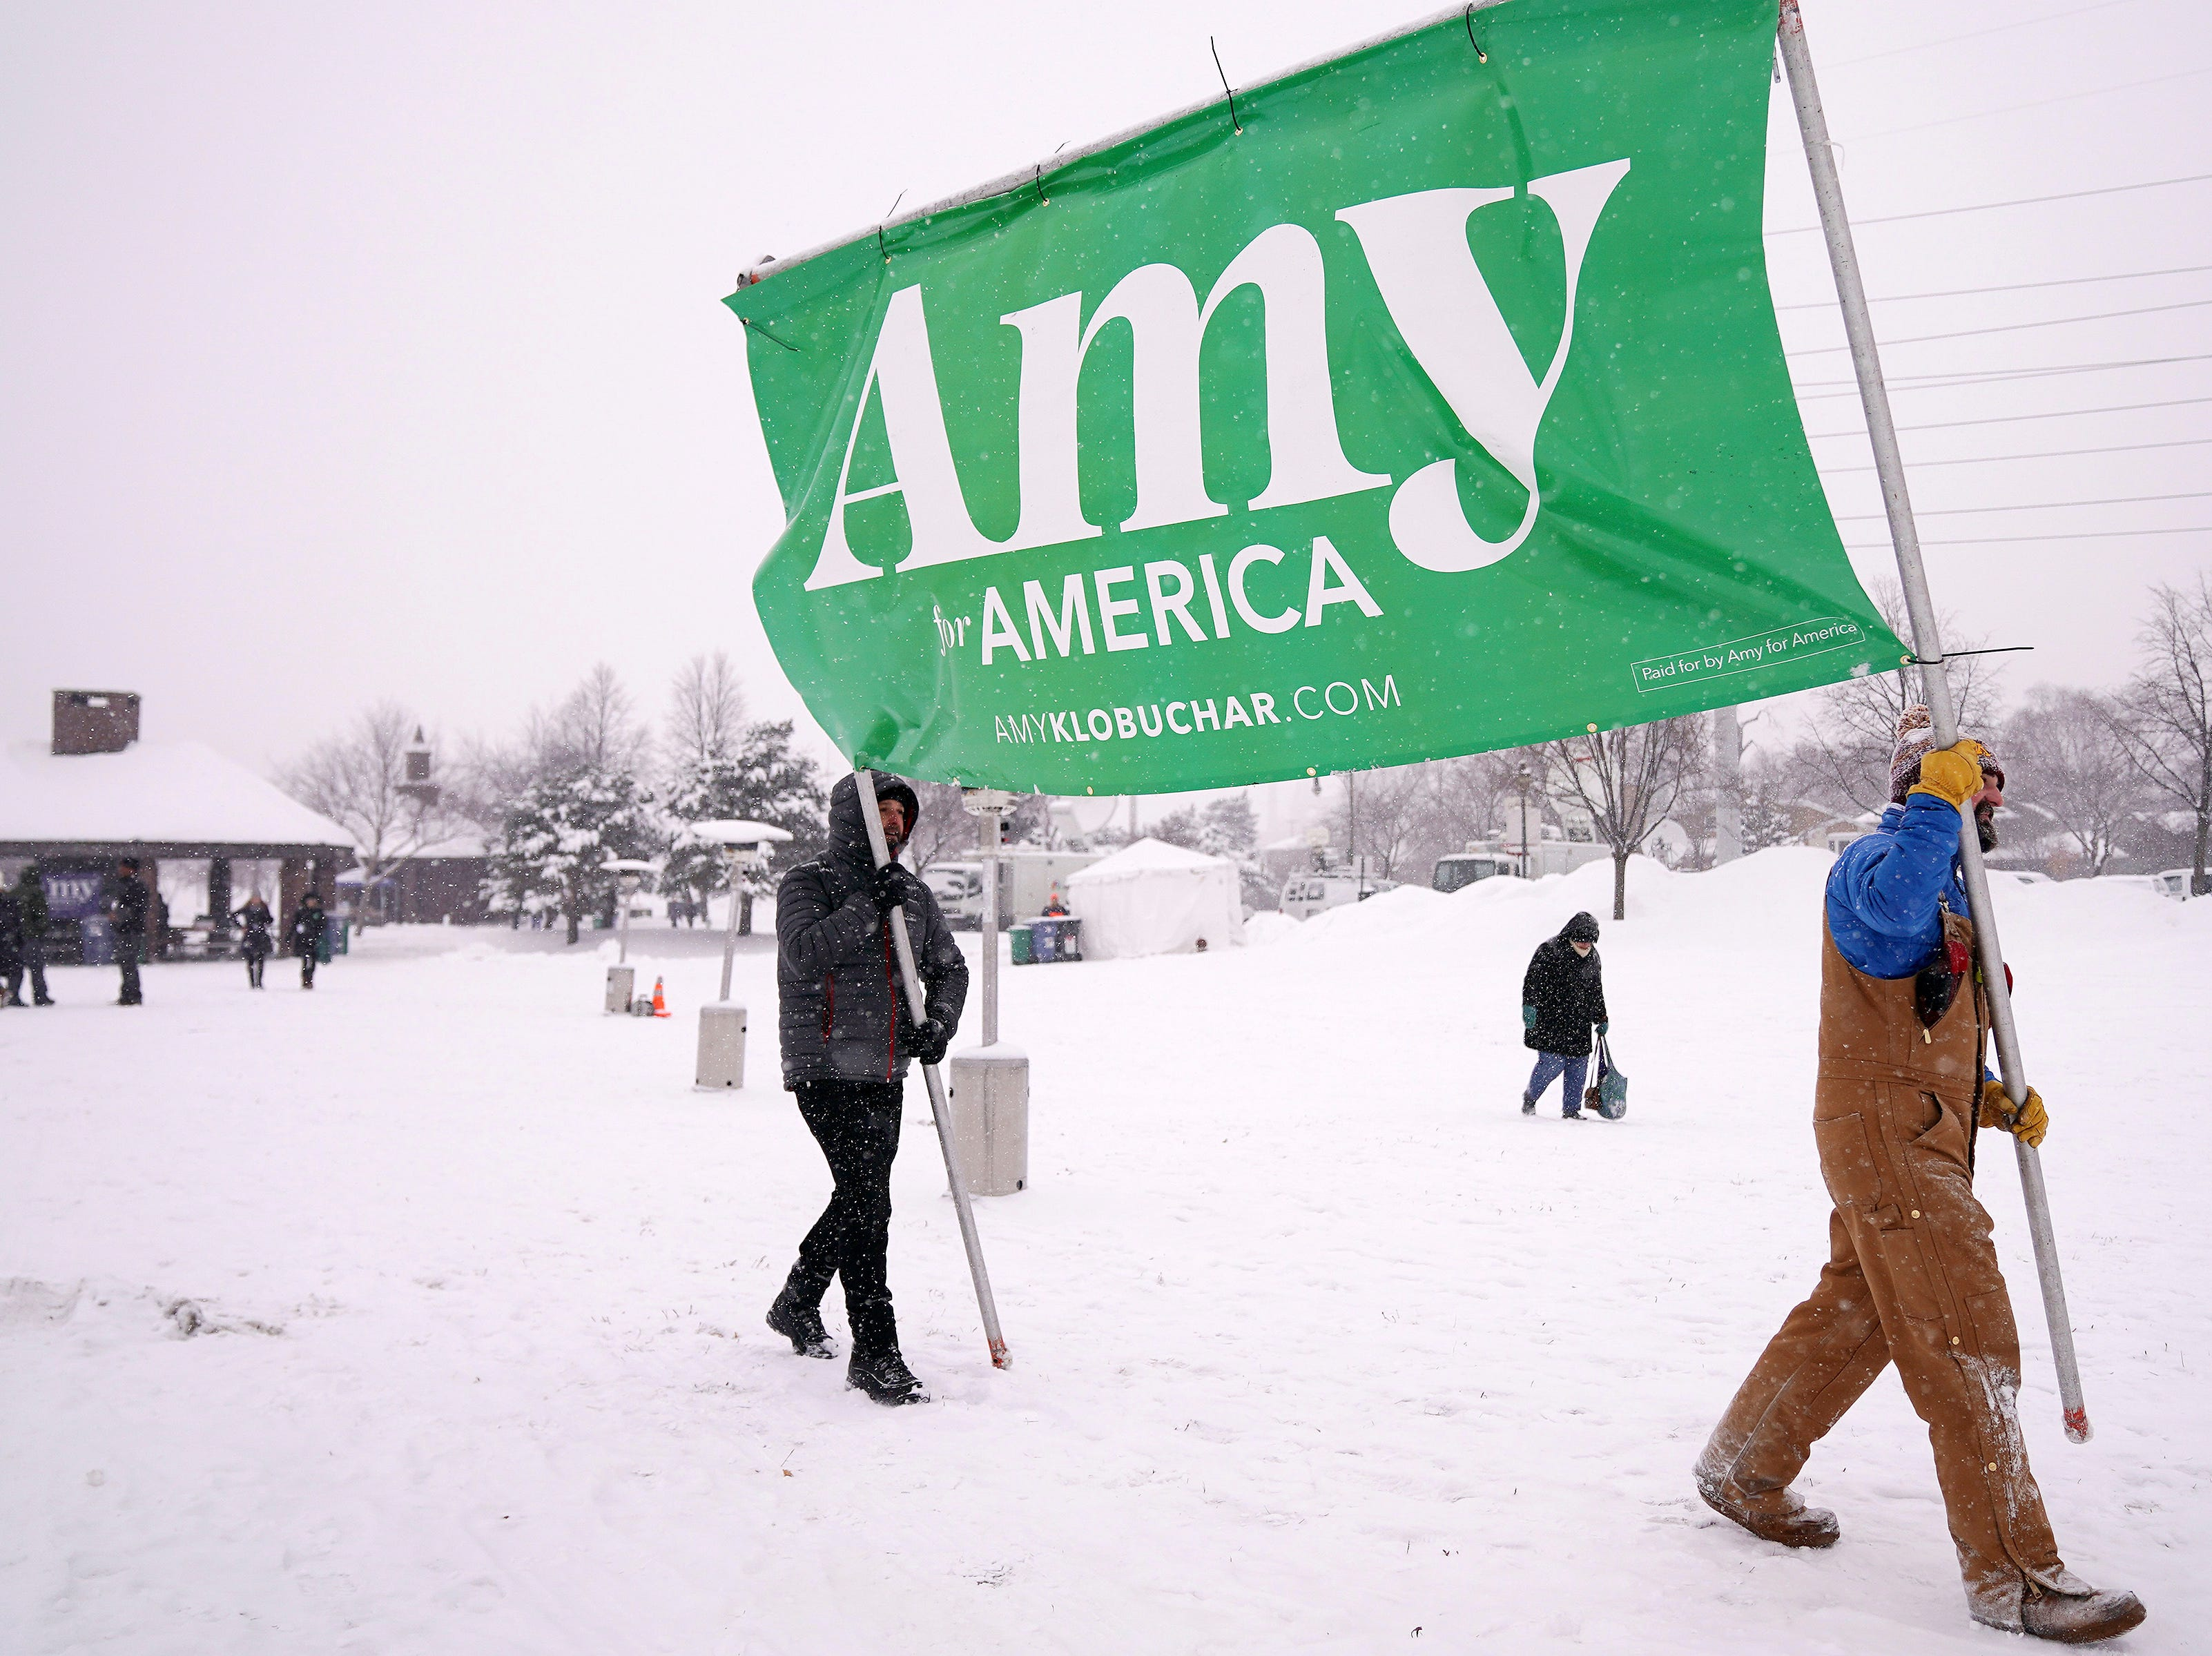 """Volunteers Tim Schumann, left, and Chase Cushman move an """"Amy for America"""" sign into place Sunday, Feb. 10, 2019, prior to Democratic Sen. Amy Klobuchar's announcement of her decision in the race for president at a rally in Minneapolis."""